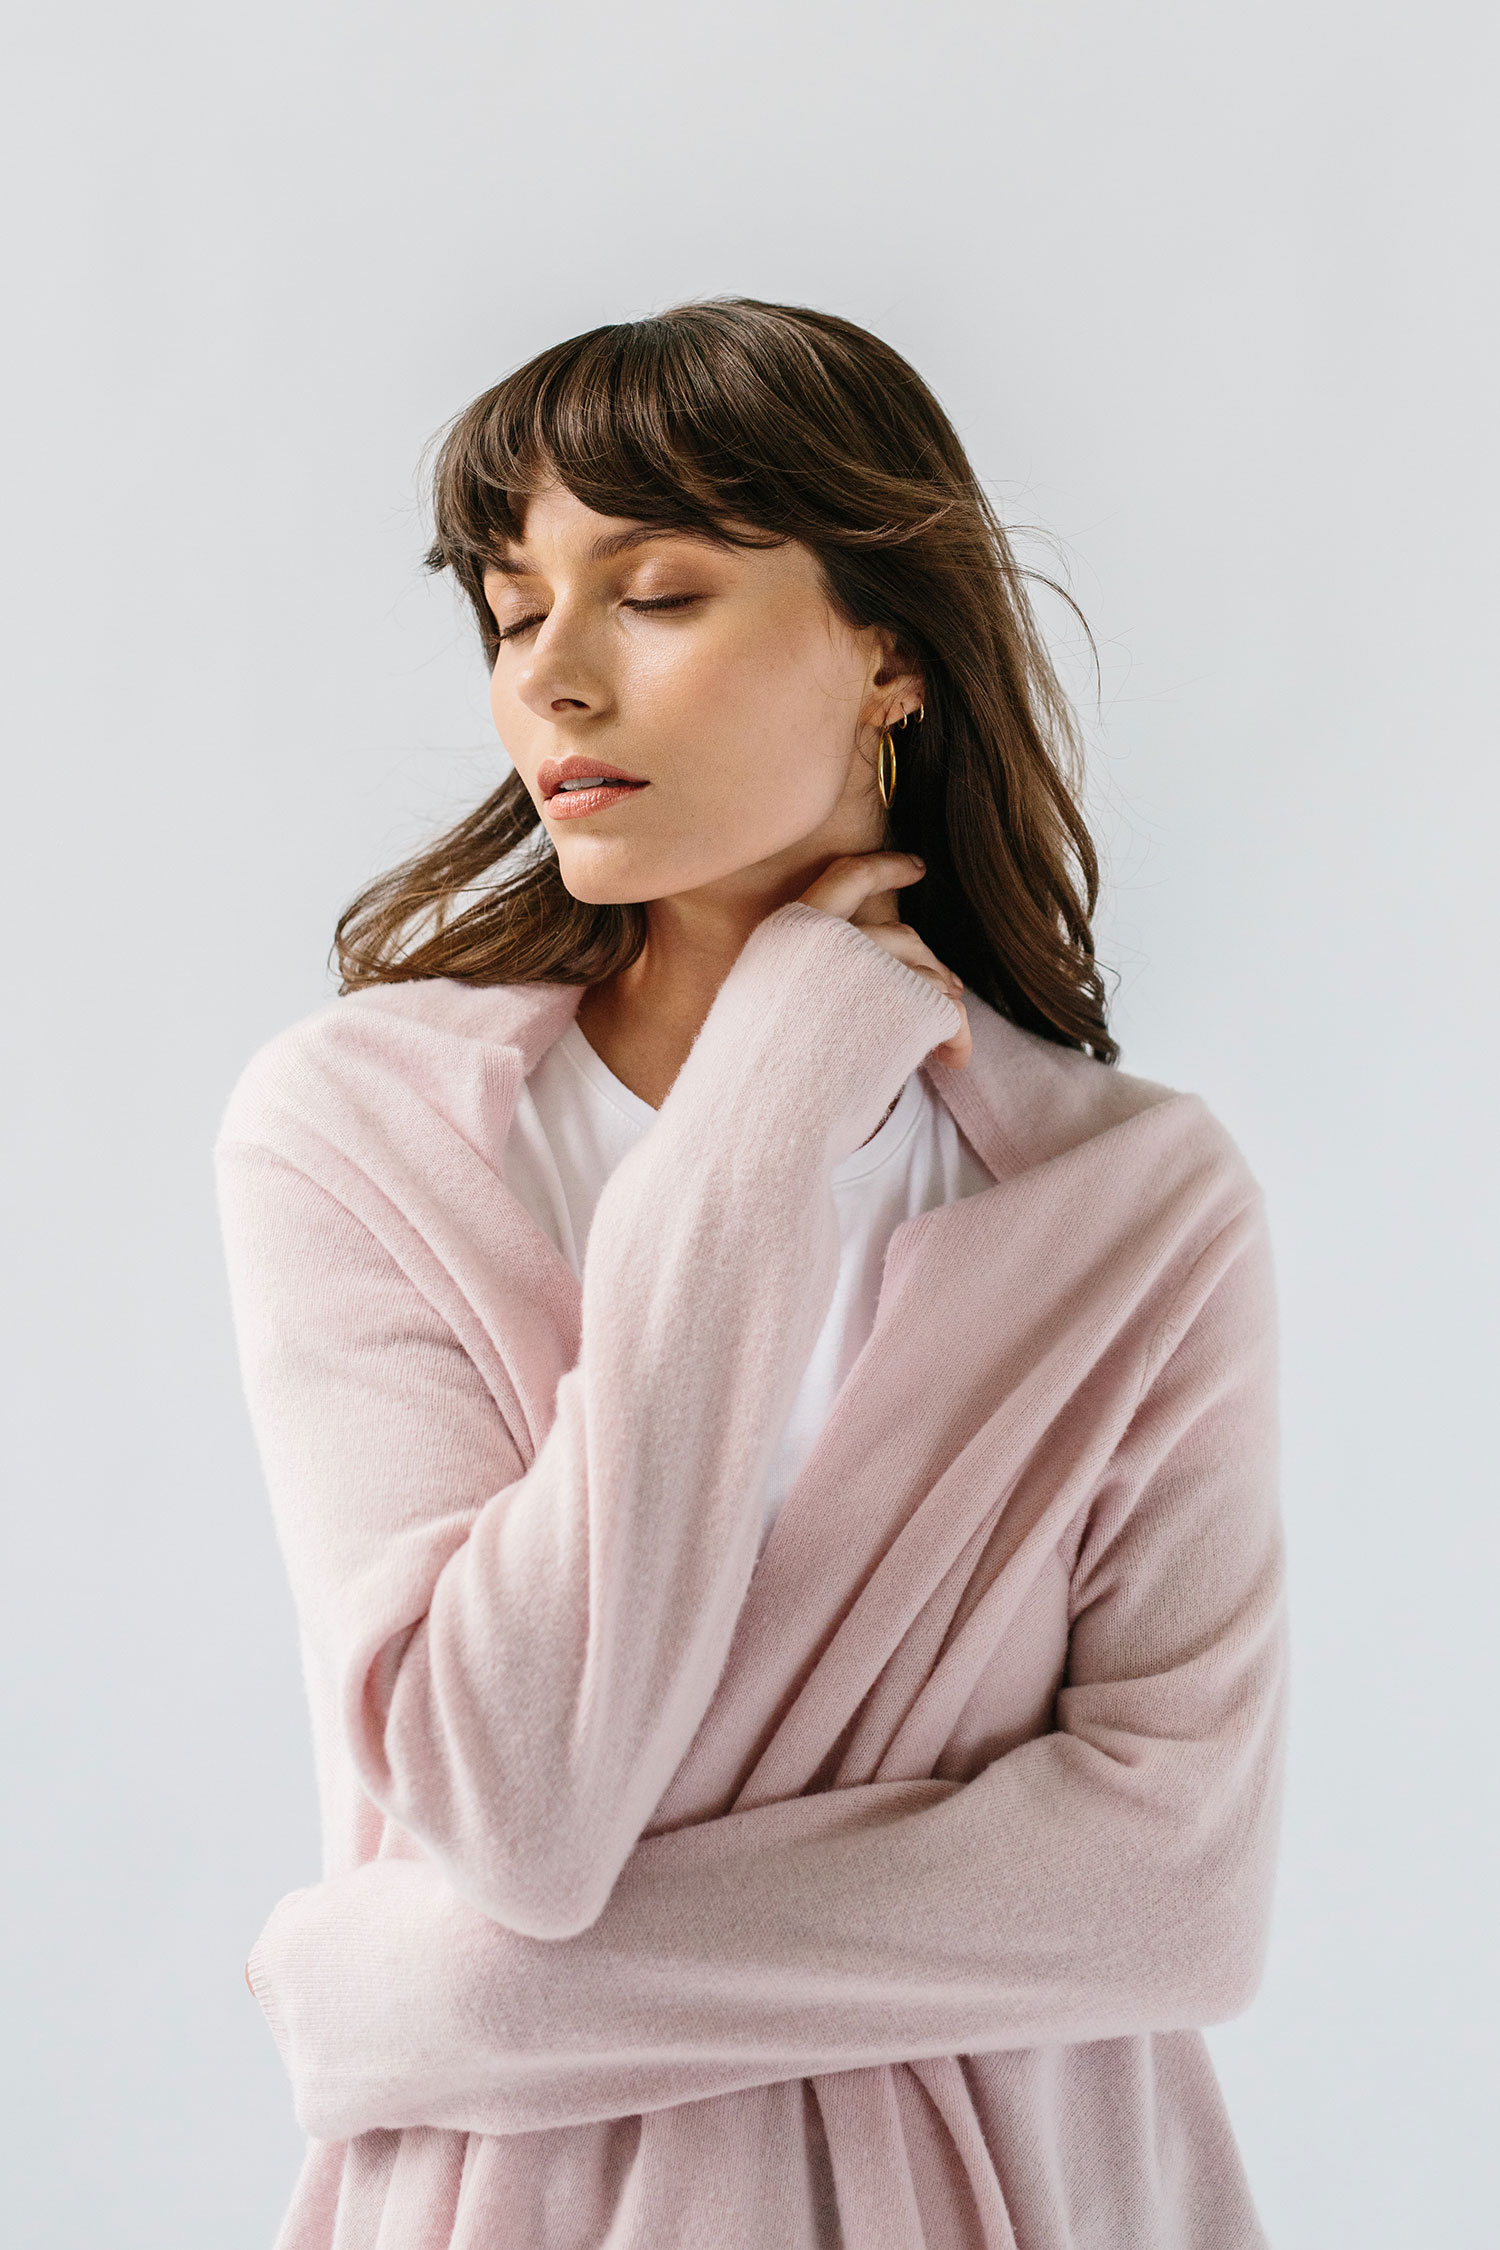 woman wearing light pink cashmere wrap sweater